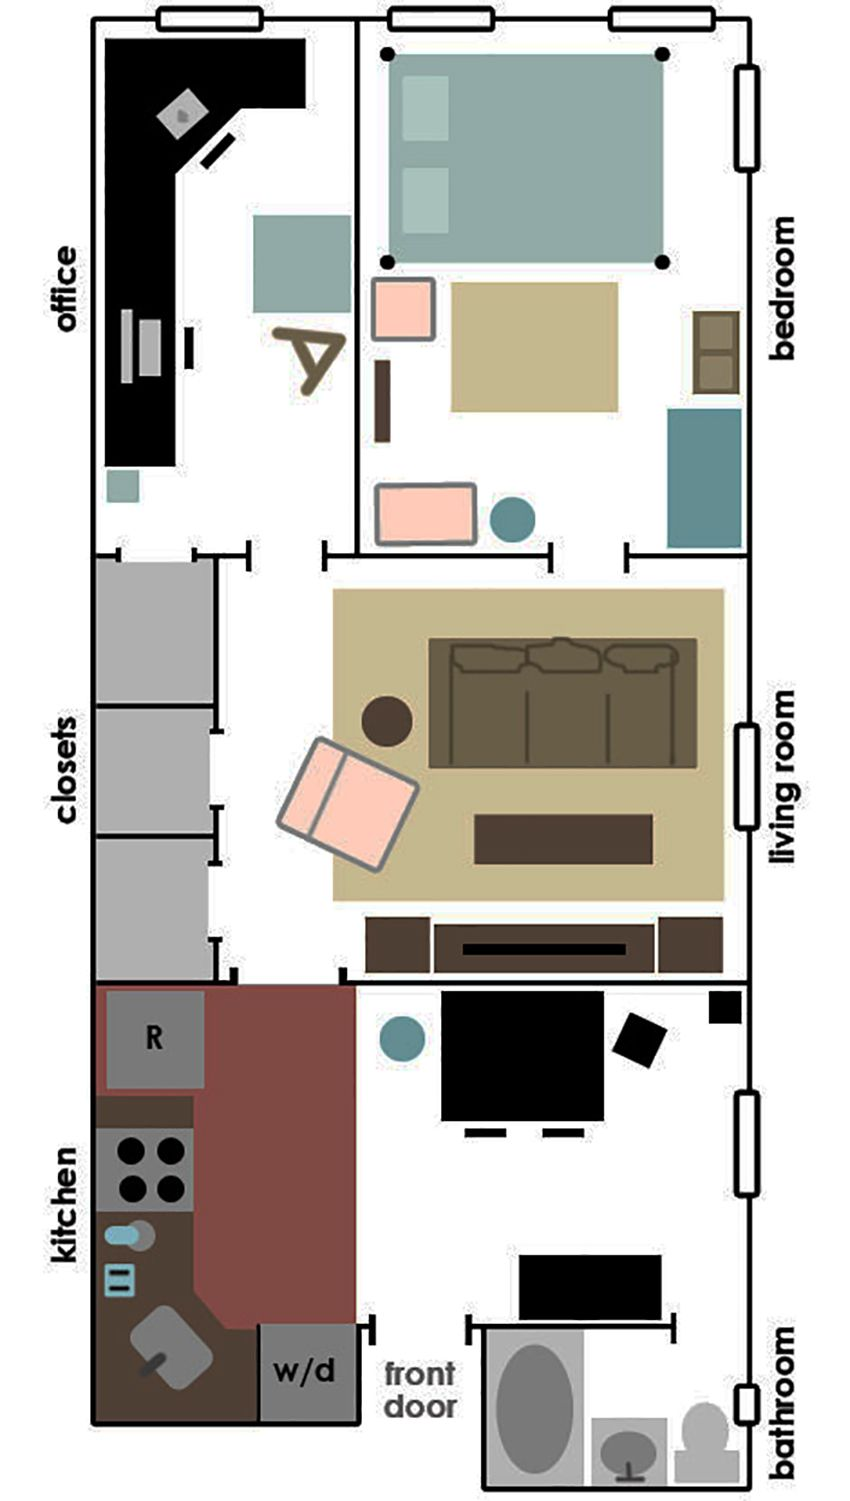 apartment furniture layout planner home design and decor